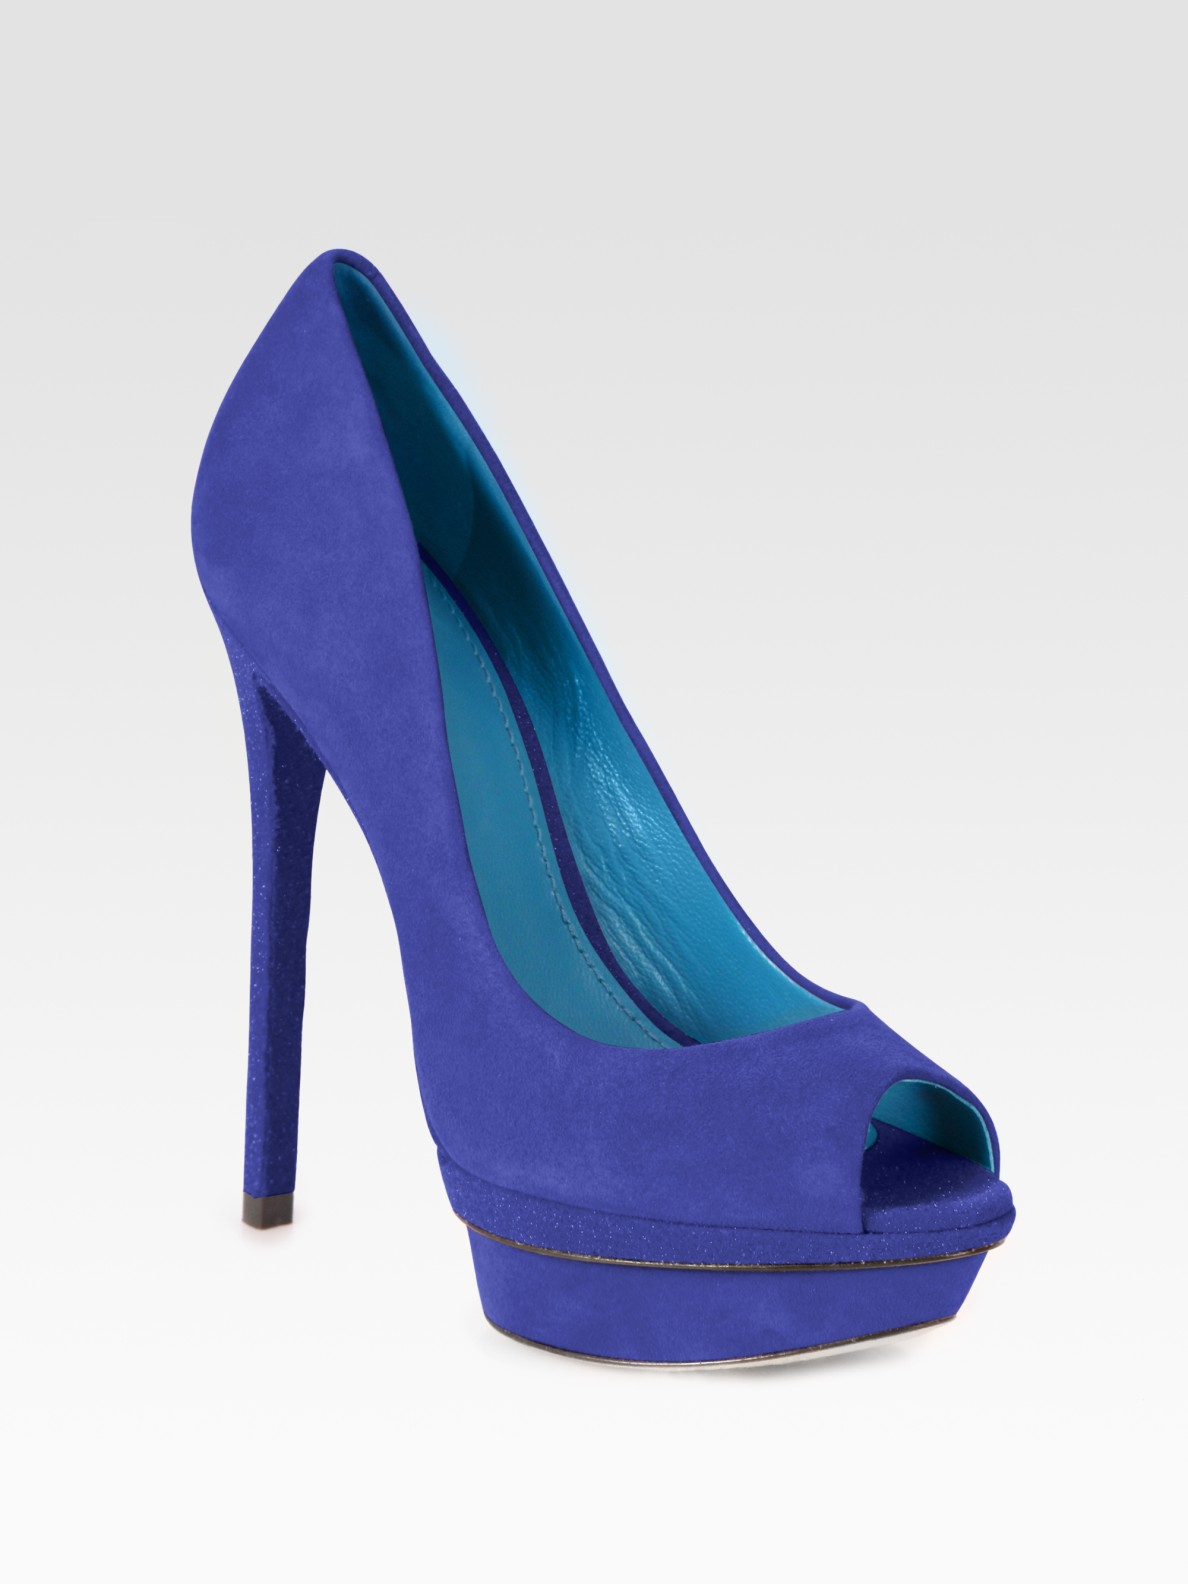 B Brian Atwood Suede Platform Peep-Toe Pumps